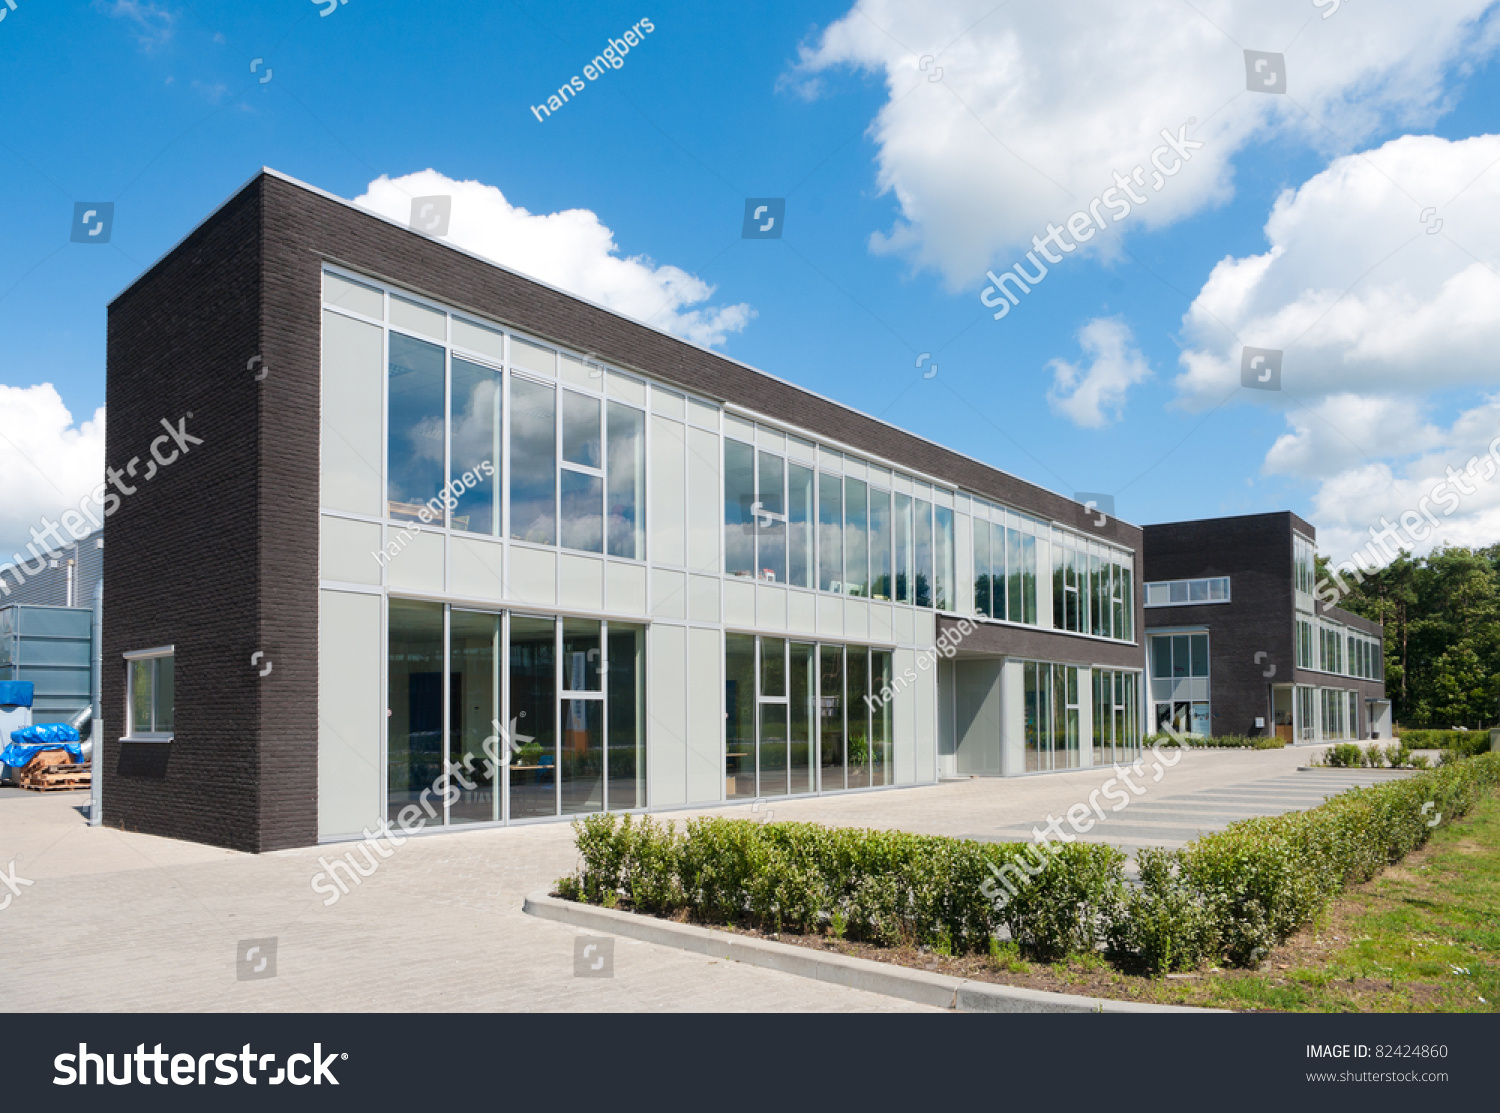 Small modern office building against nice stock photo for Nice building images